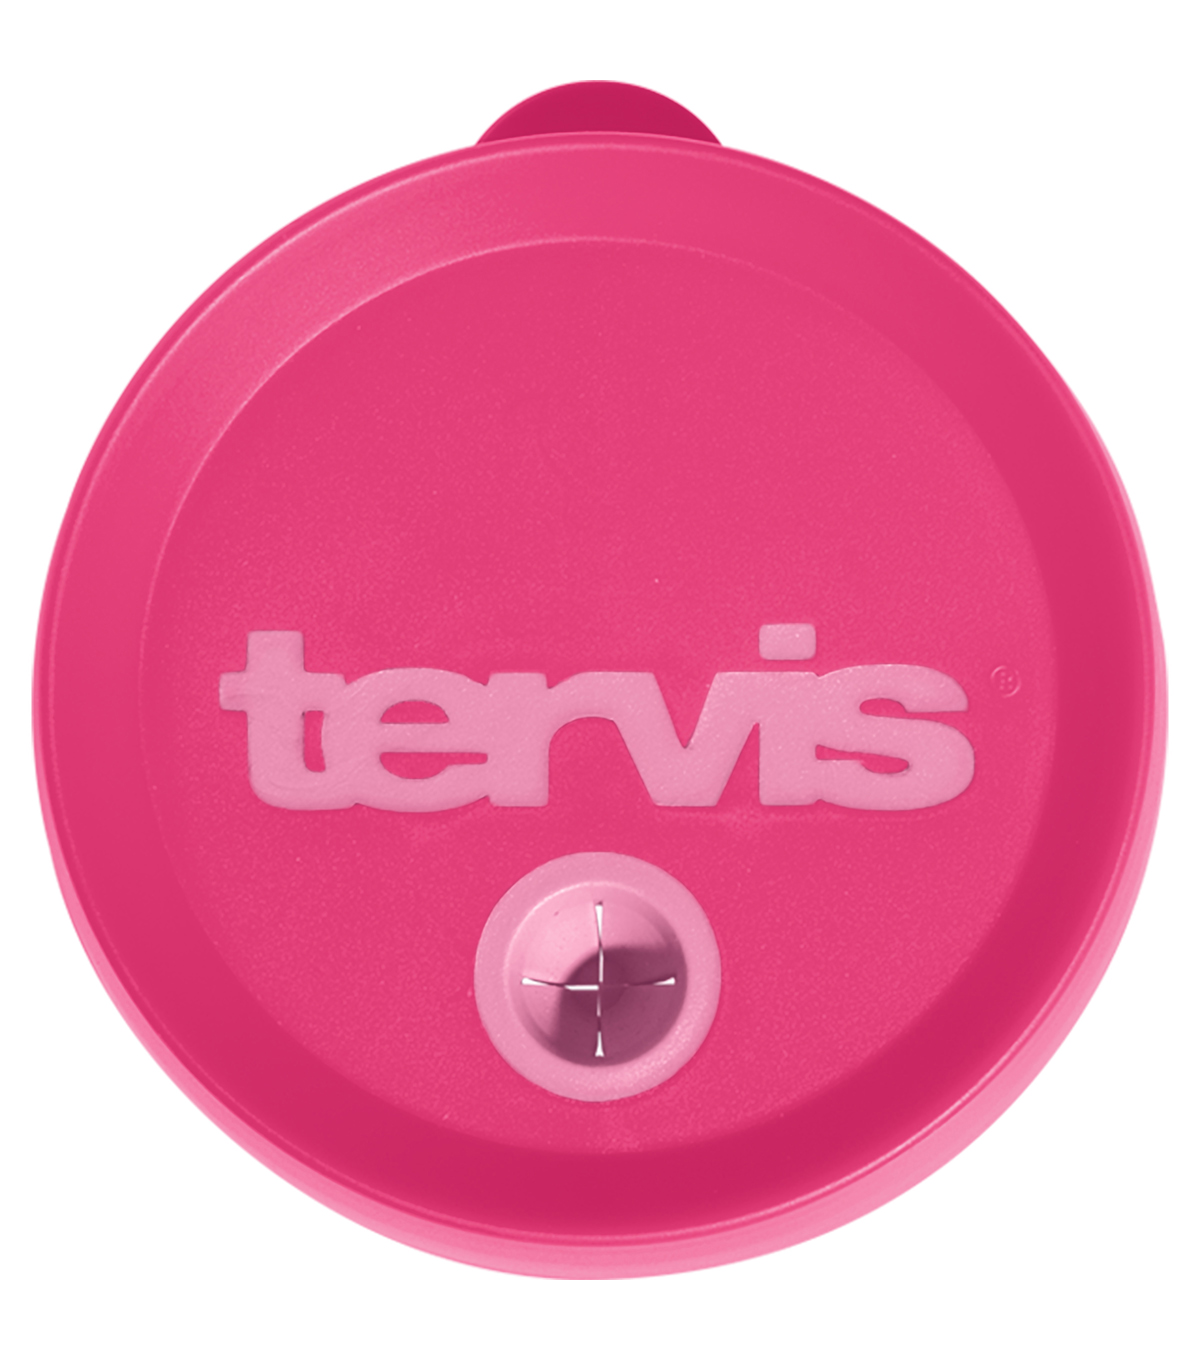 Tervis 16oz. Straw Lid-Pink